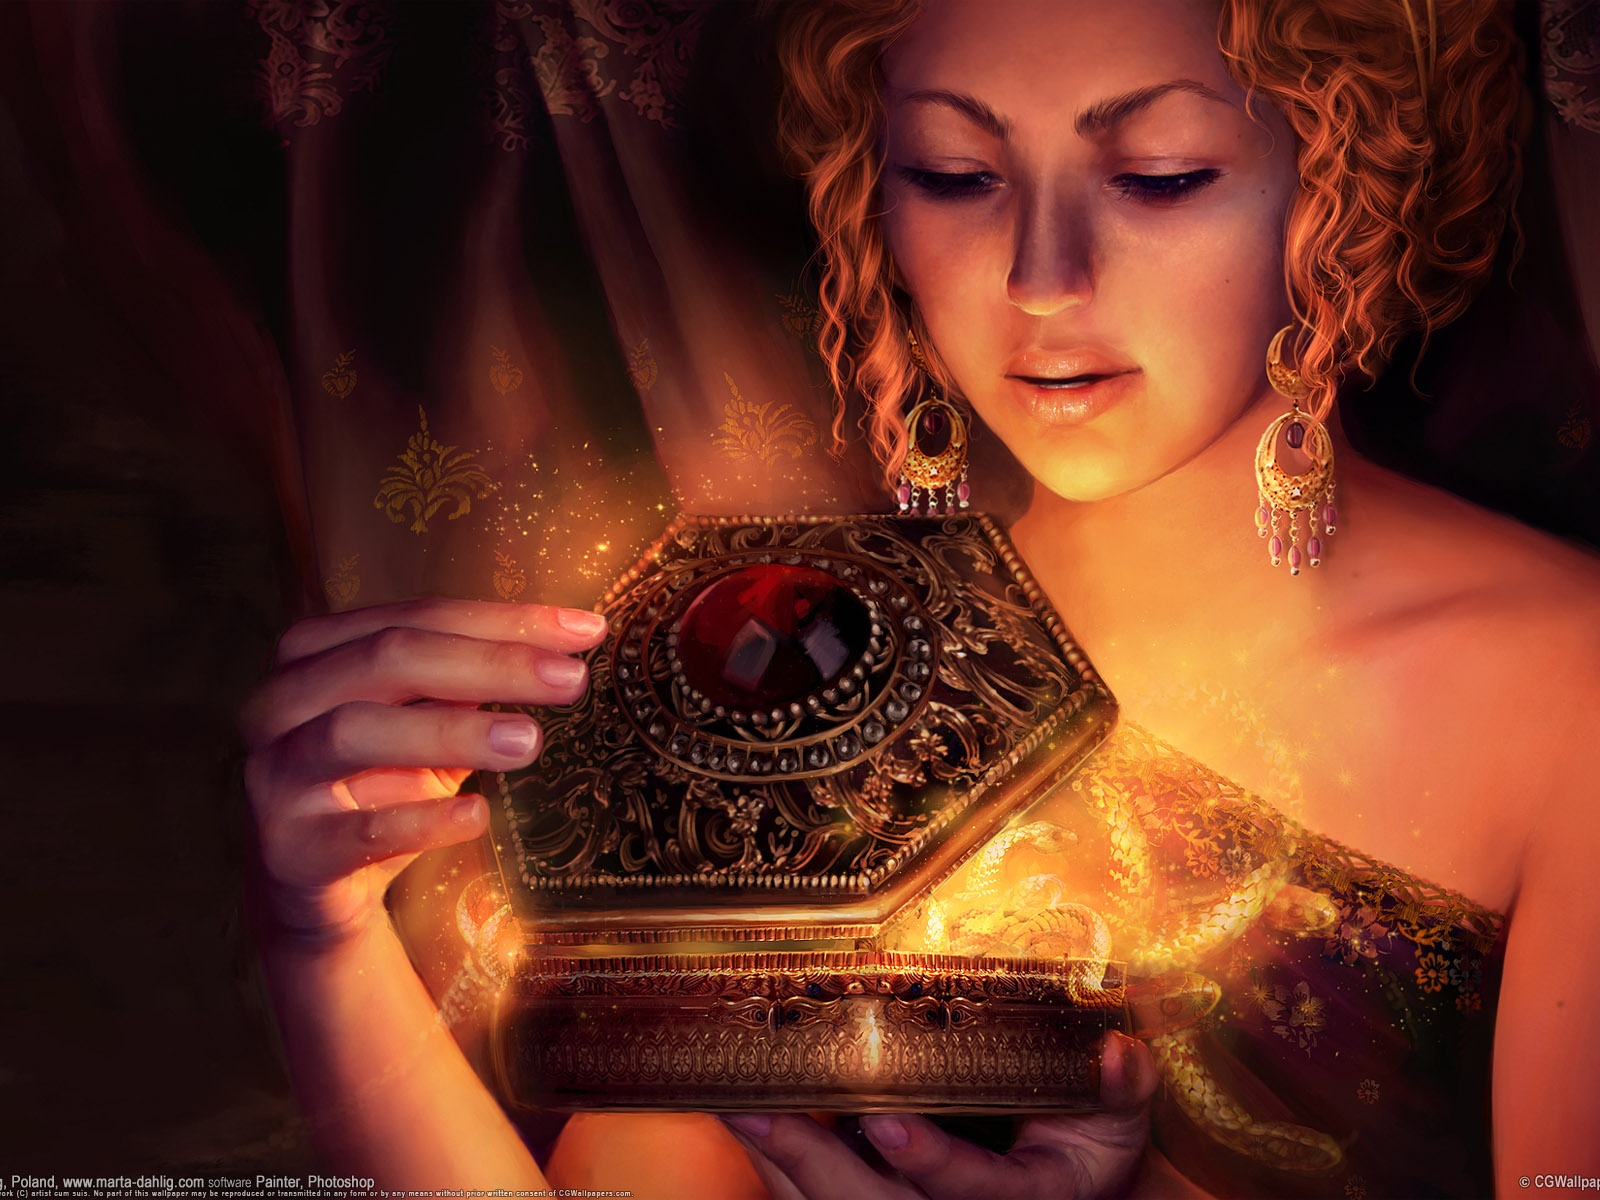 click to free download the wallpaper--Amazing Pic of Beautiful Lady, Pandora Opening the Forbidden Box, Negative Emotions Pouring Out 1600X1200 free wallpaper download